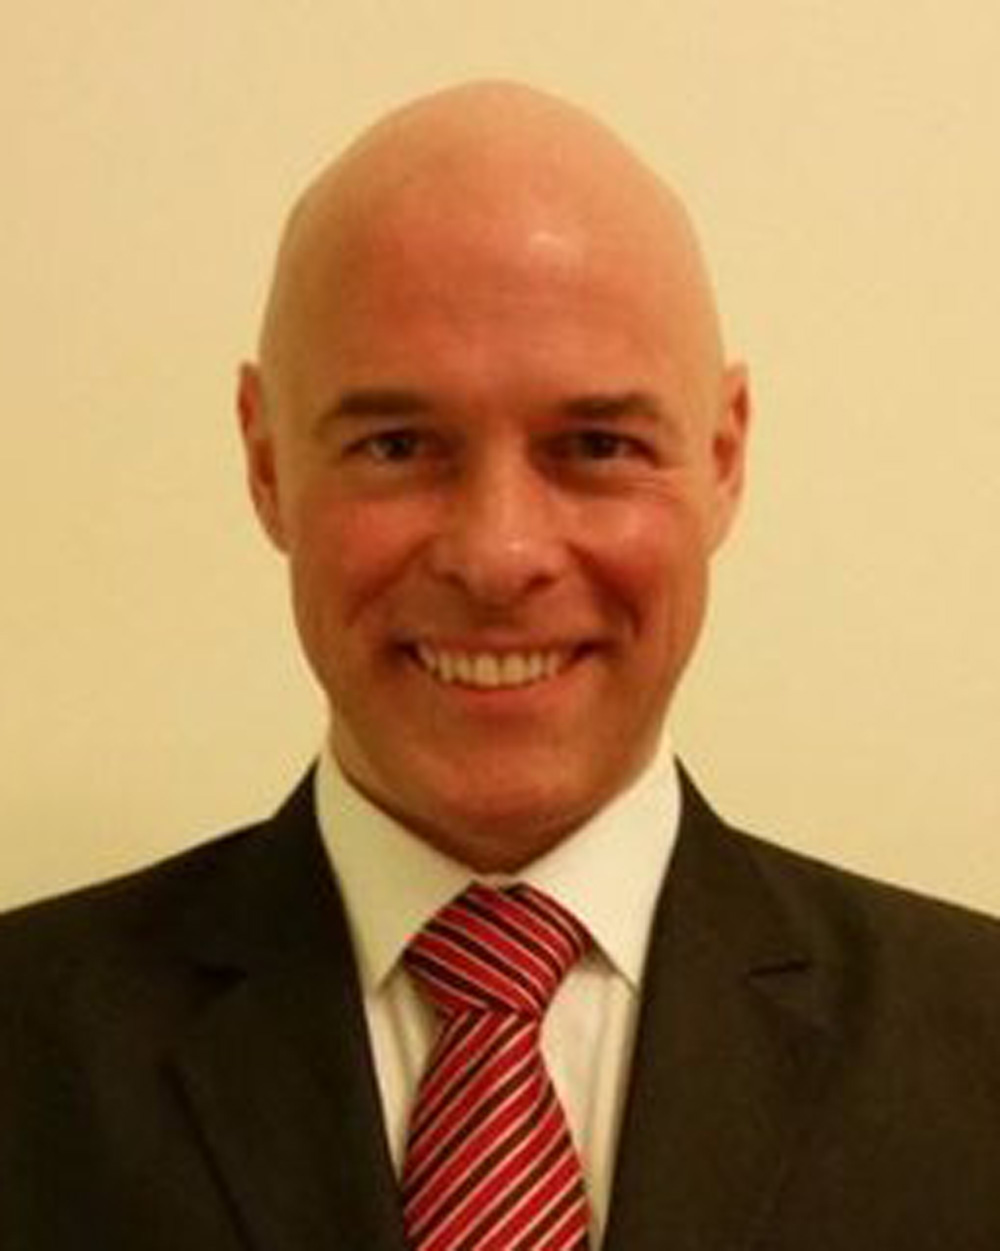 John Vandermosten, CFA, is a Senior Biotechnology Research Analyst for Zacks Investment Research